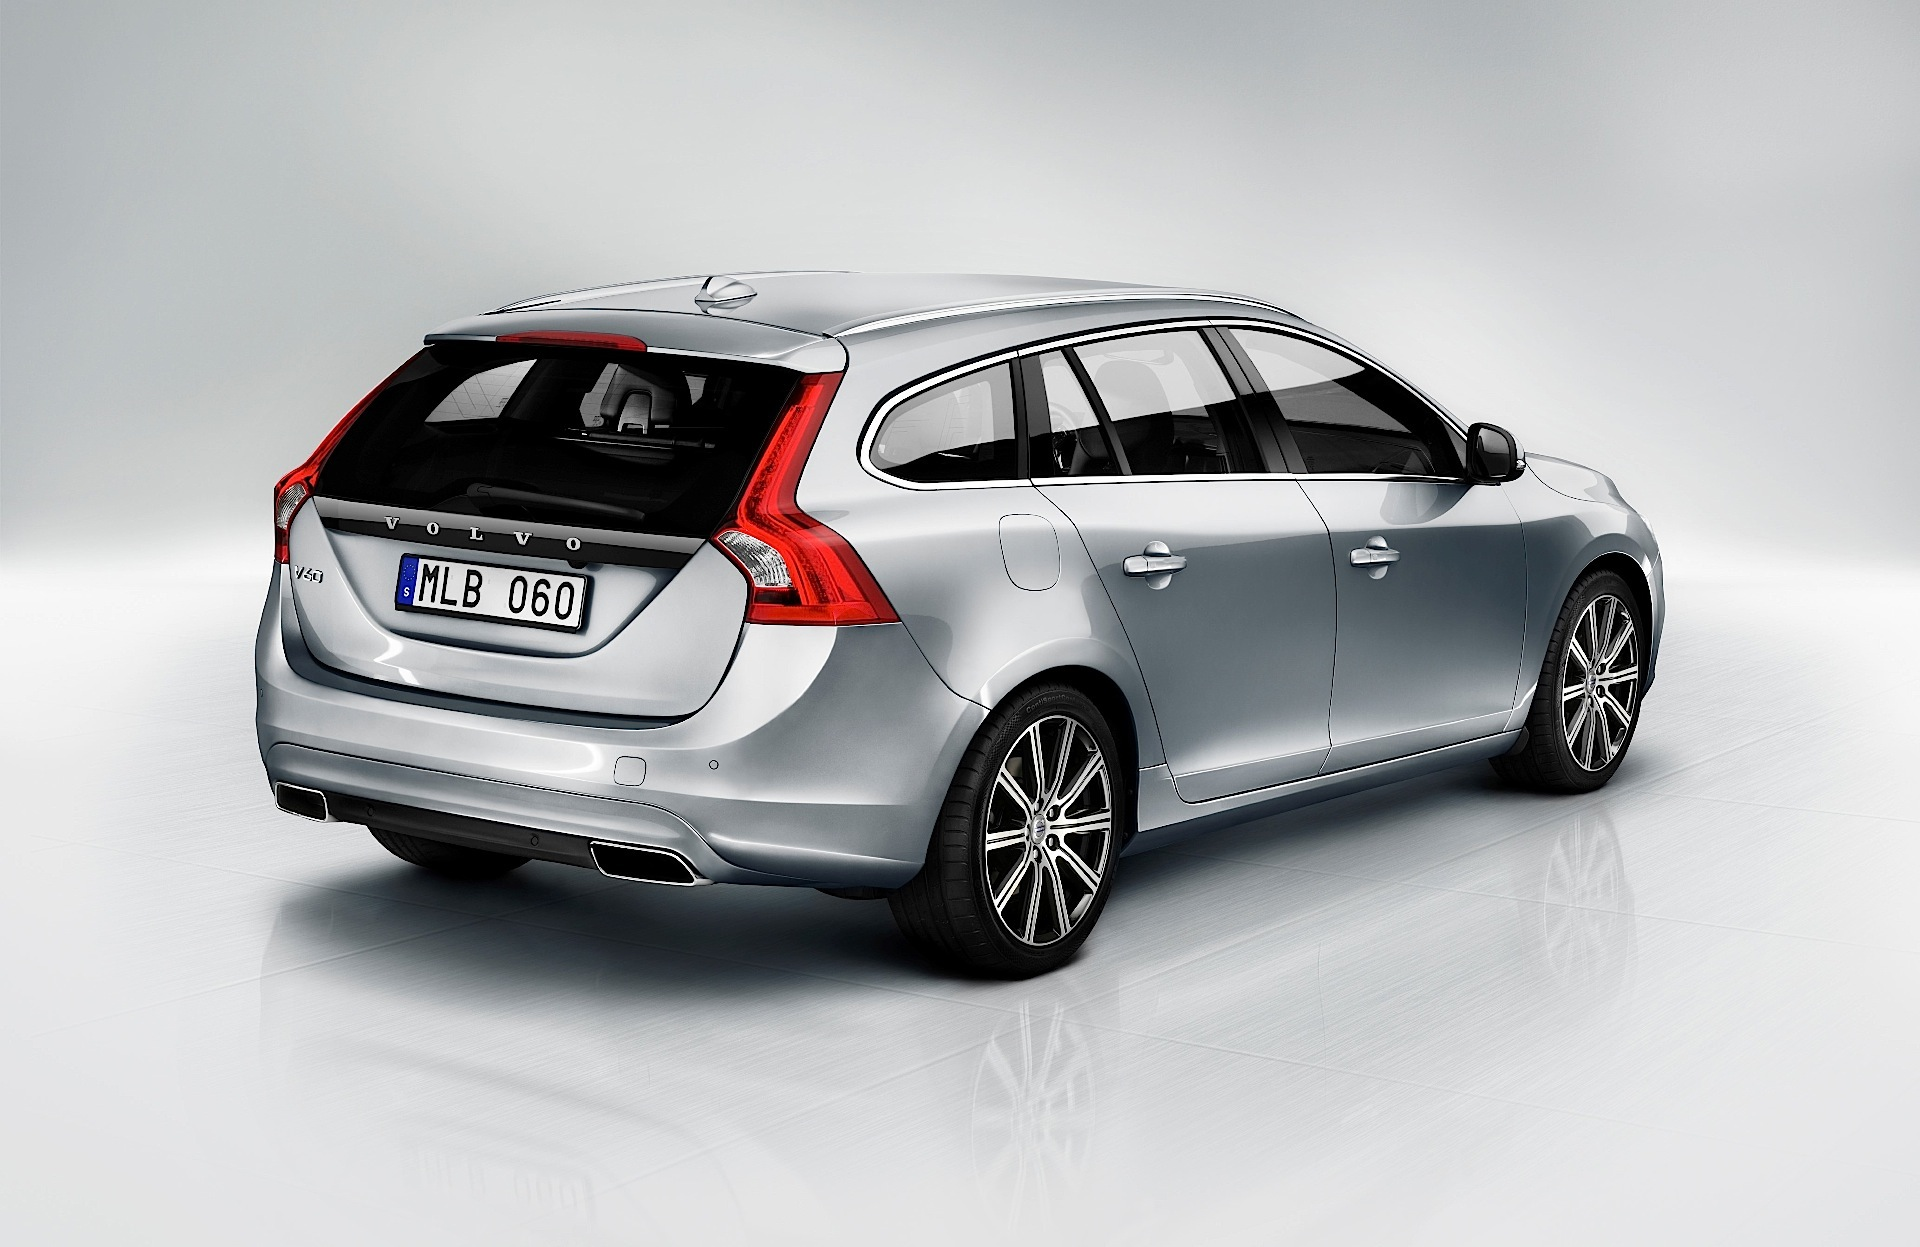 volvo v60 specs photos 2014 2015 2016 2017 2018. Black Bedroom Furniture Sets. Home Design Ideas